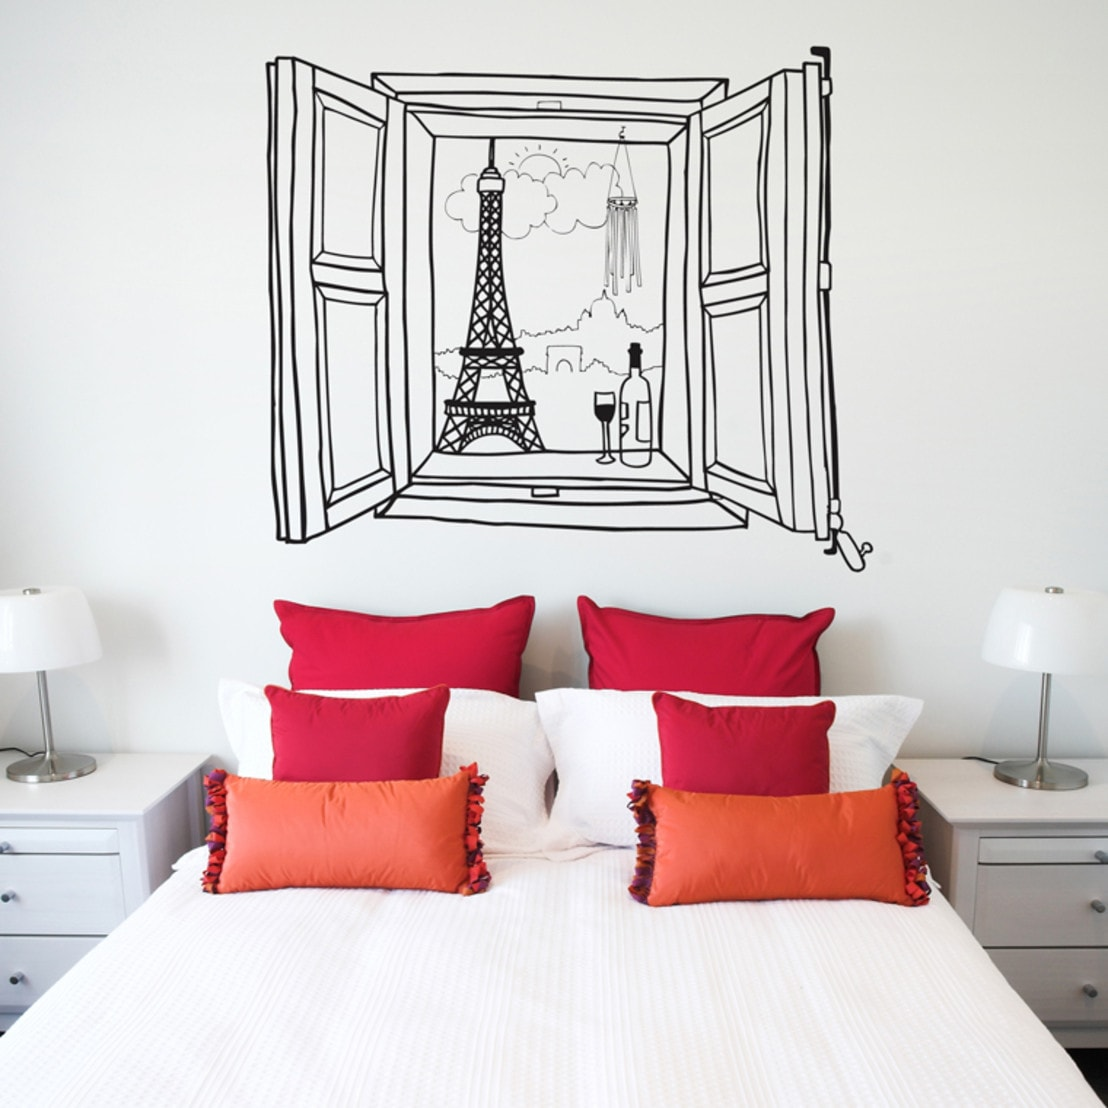 8 ideas de cabeceros de cama modernos y sencillos for Sticker para decorar dormitorios